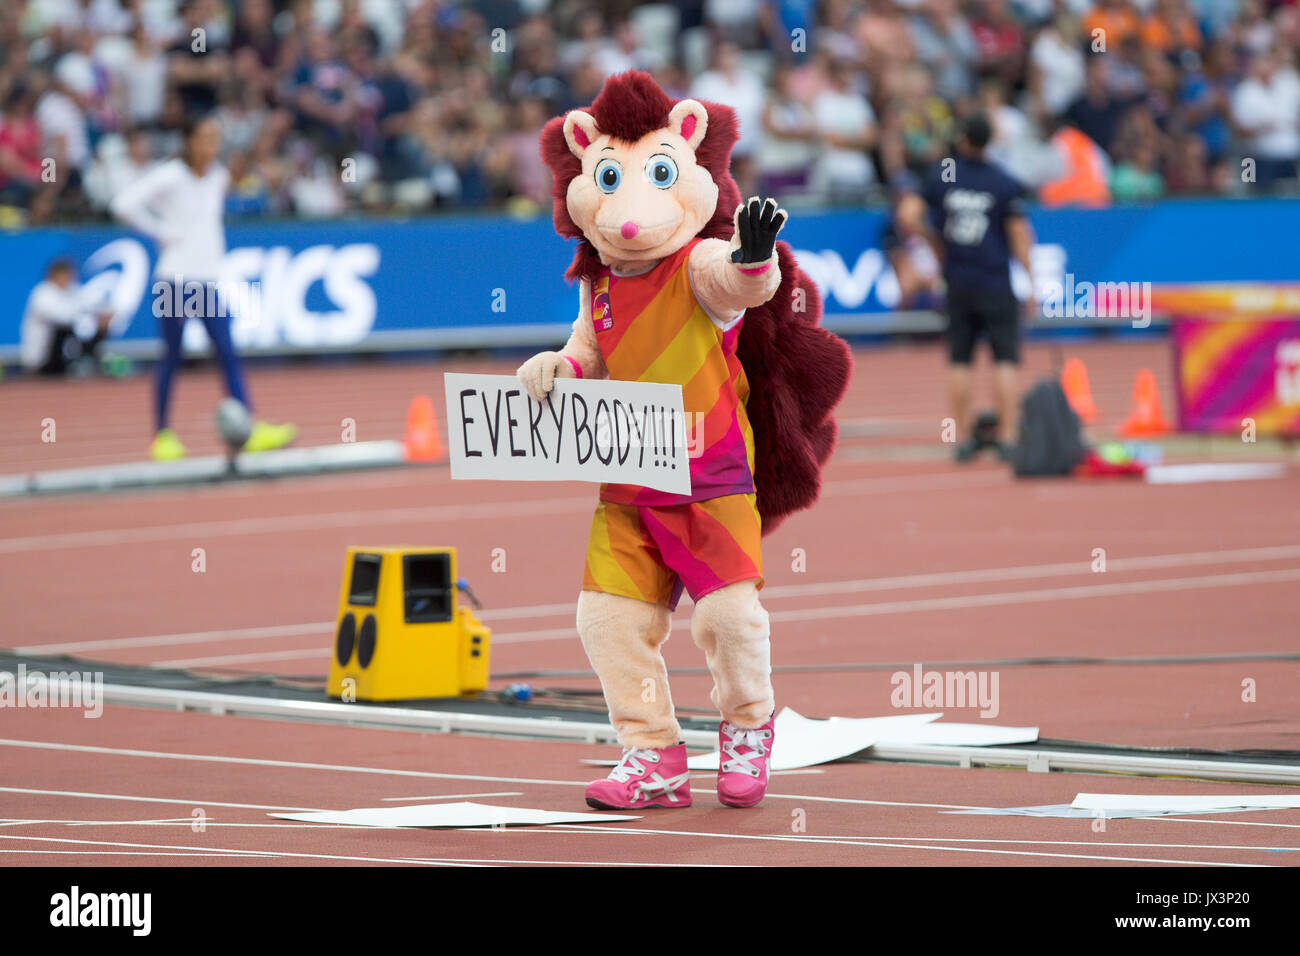 London Stadium, East London, England; IAAF World Championships; Hero the Hedgehog Mascot entertaining the fans on August 12th 2017. - Stock Image